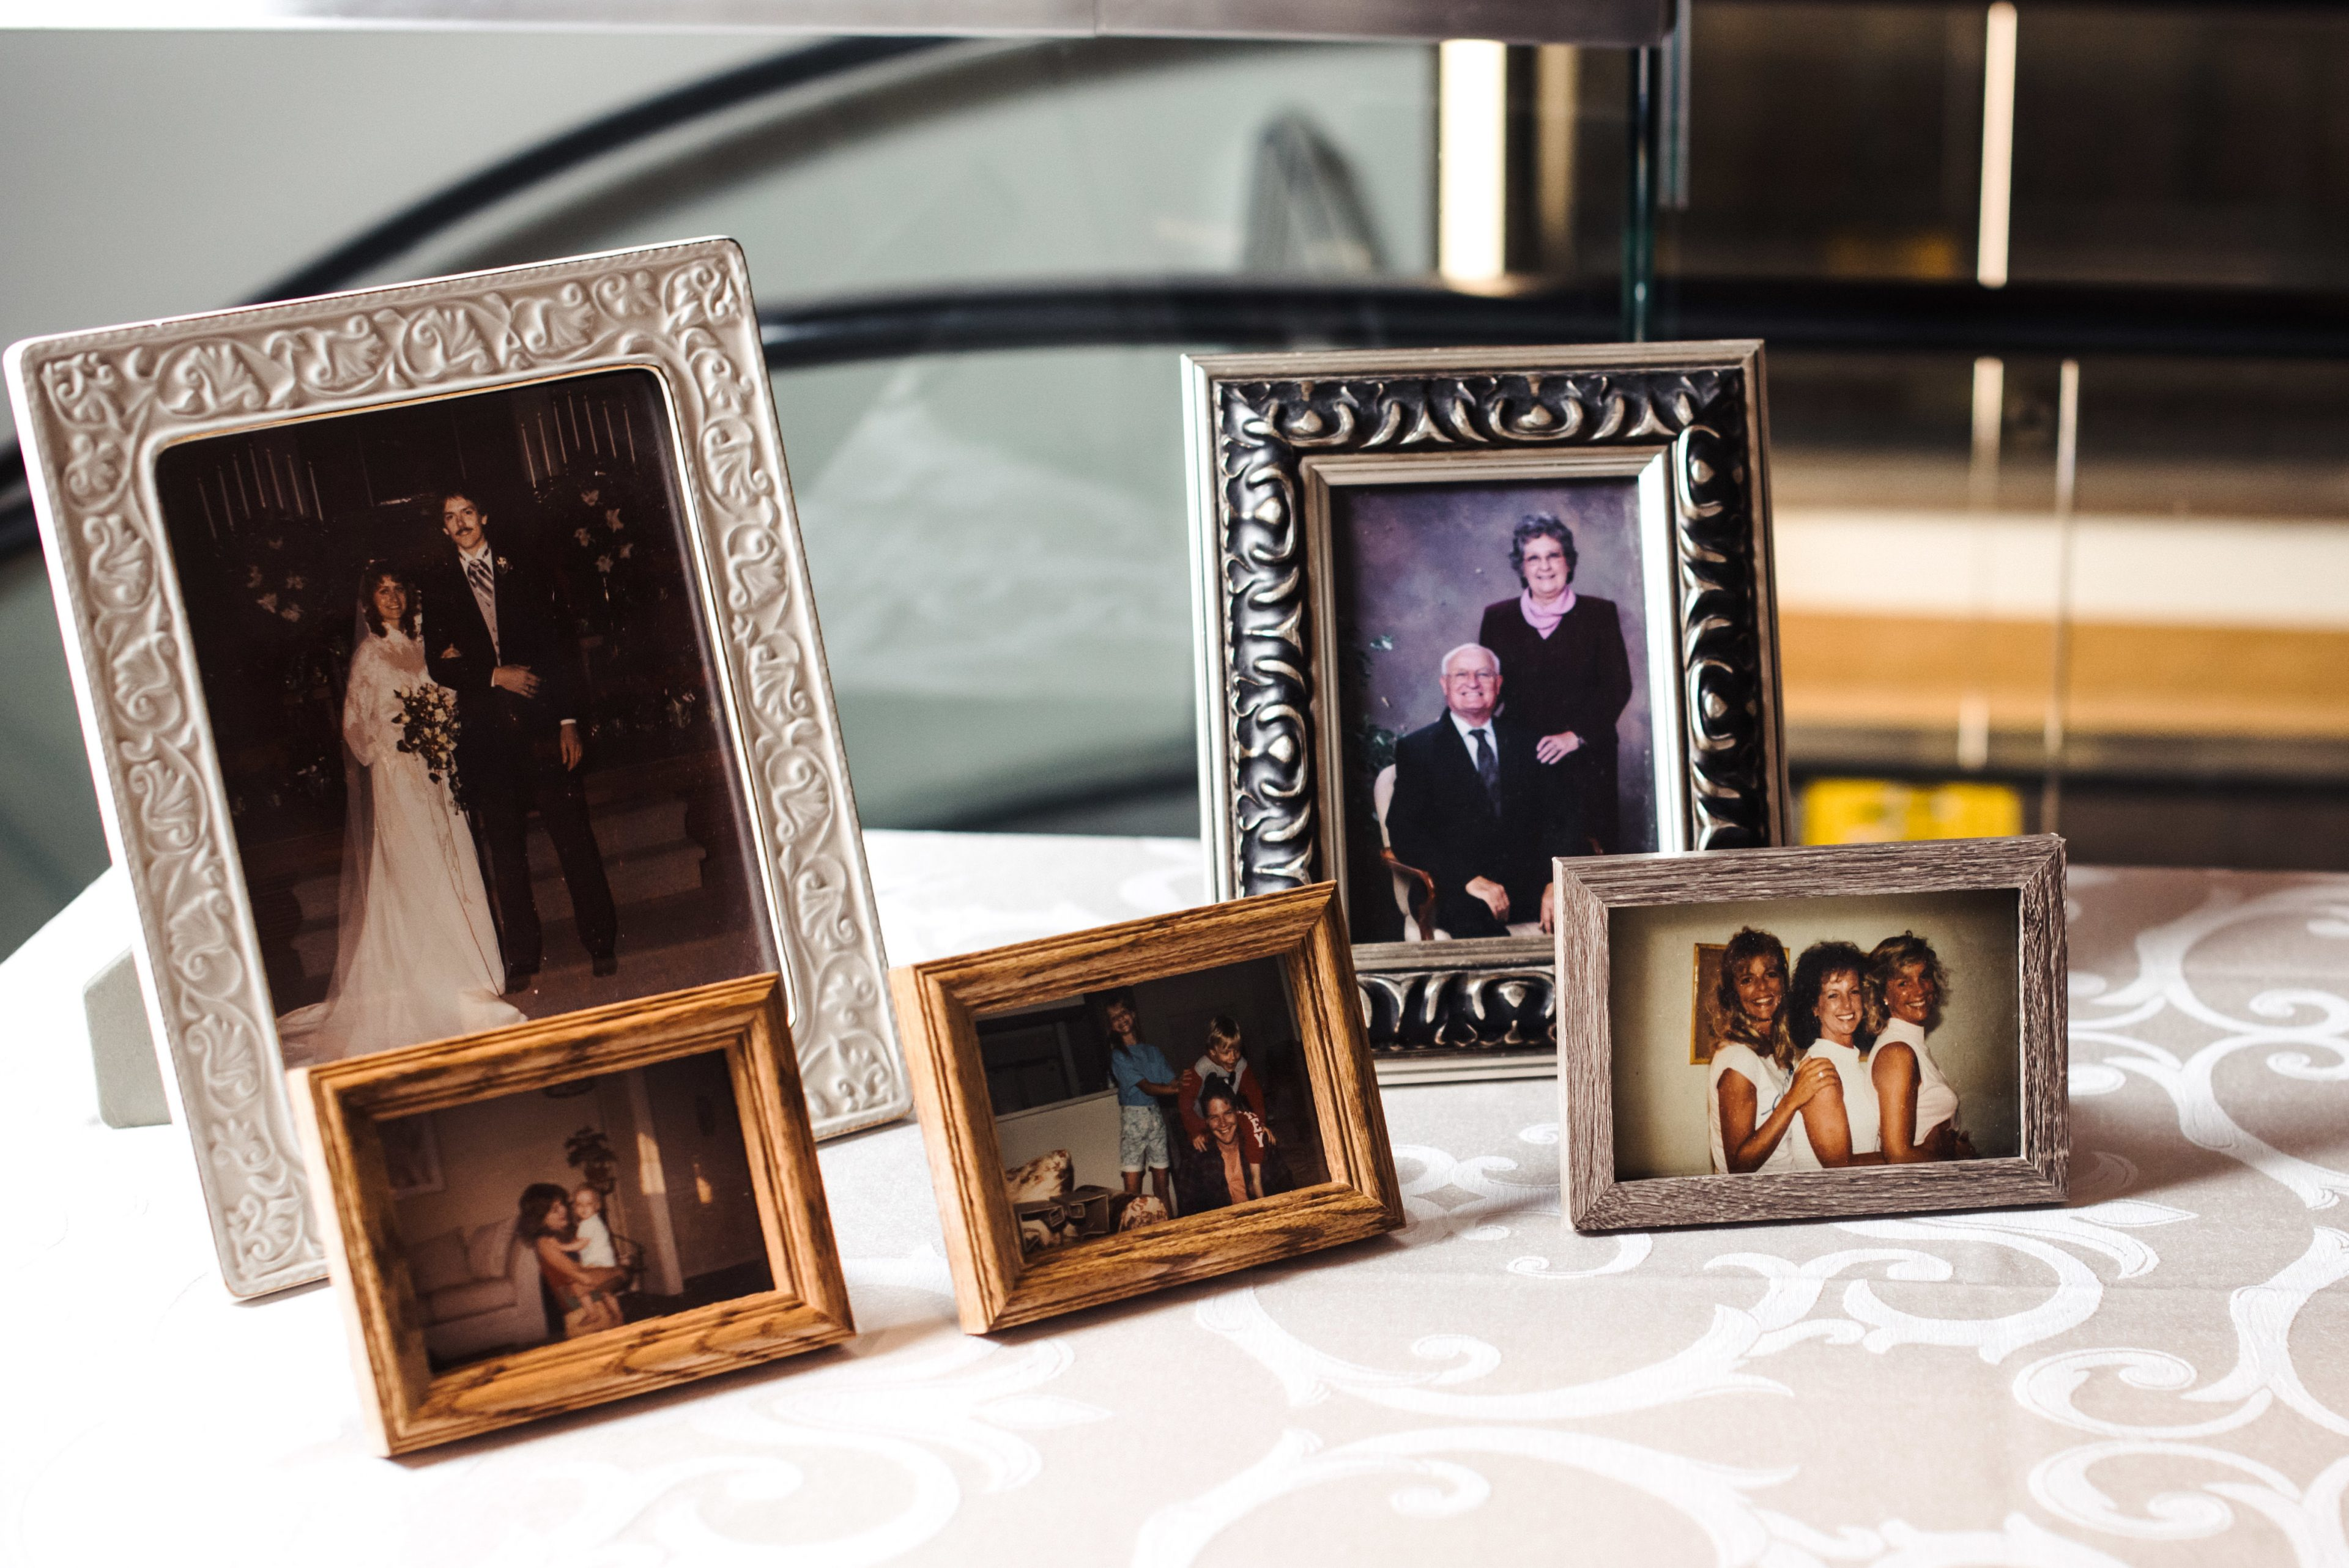 Wedding family photo table at Mint Museum Uptown wedding with coordination provided by Magnificent Moments Weddings